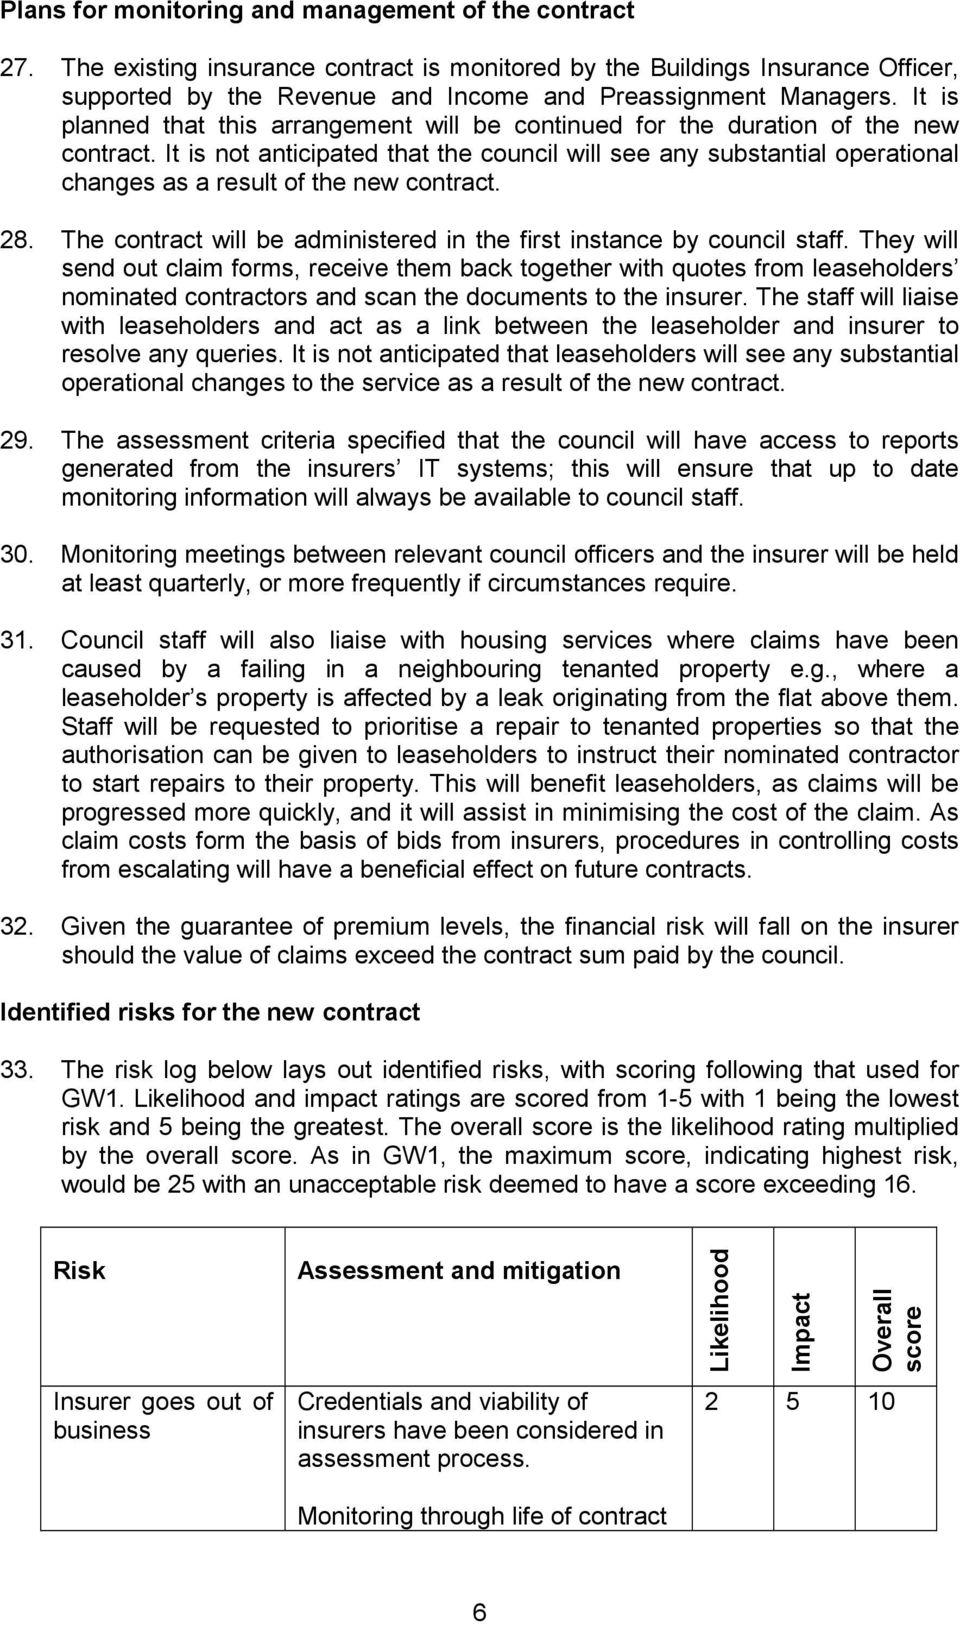 It is not anticipated that the council will see any substantial operational changes as a result of the new contract. 28. The contract will be administered in the first instance by council staff.